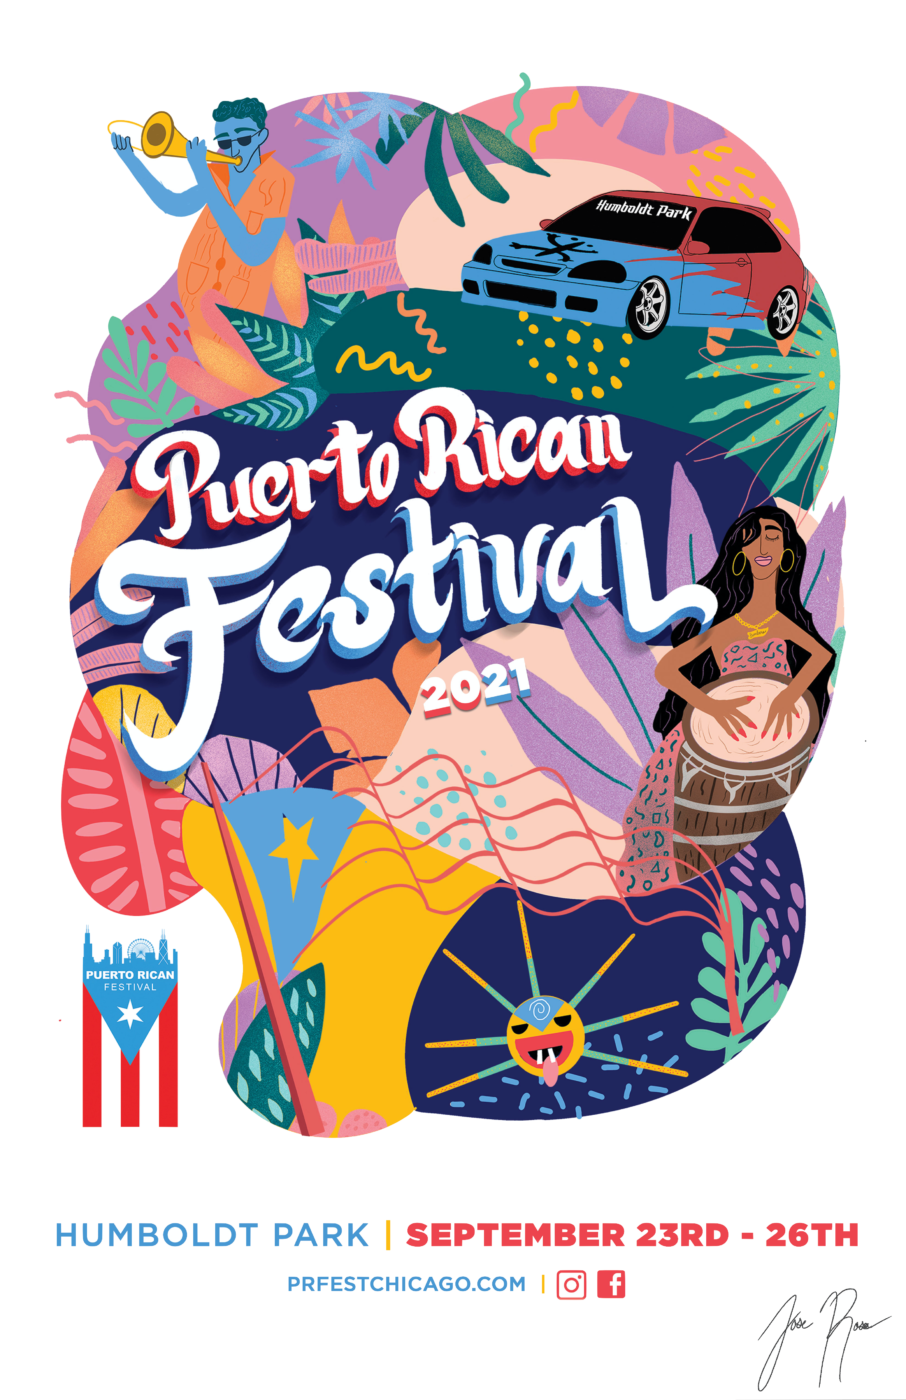 Puerto Rican Festival of Chicago 2021